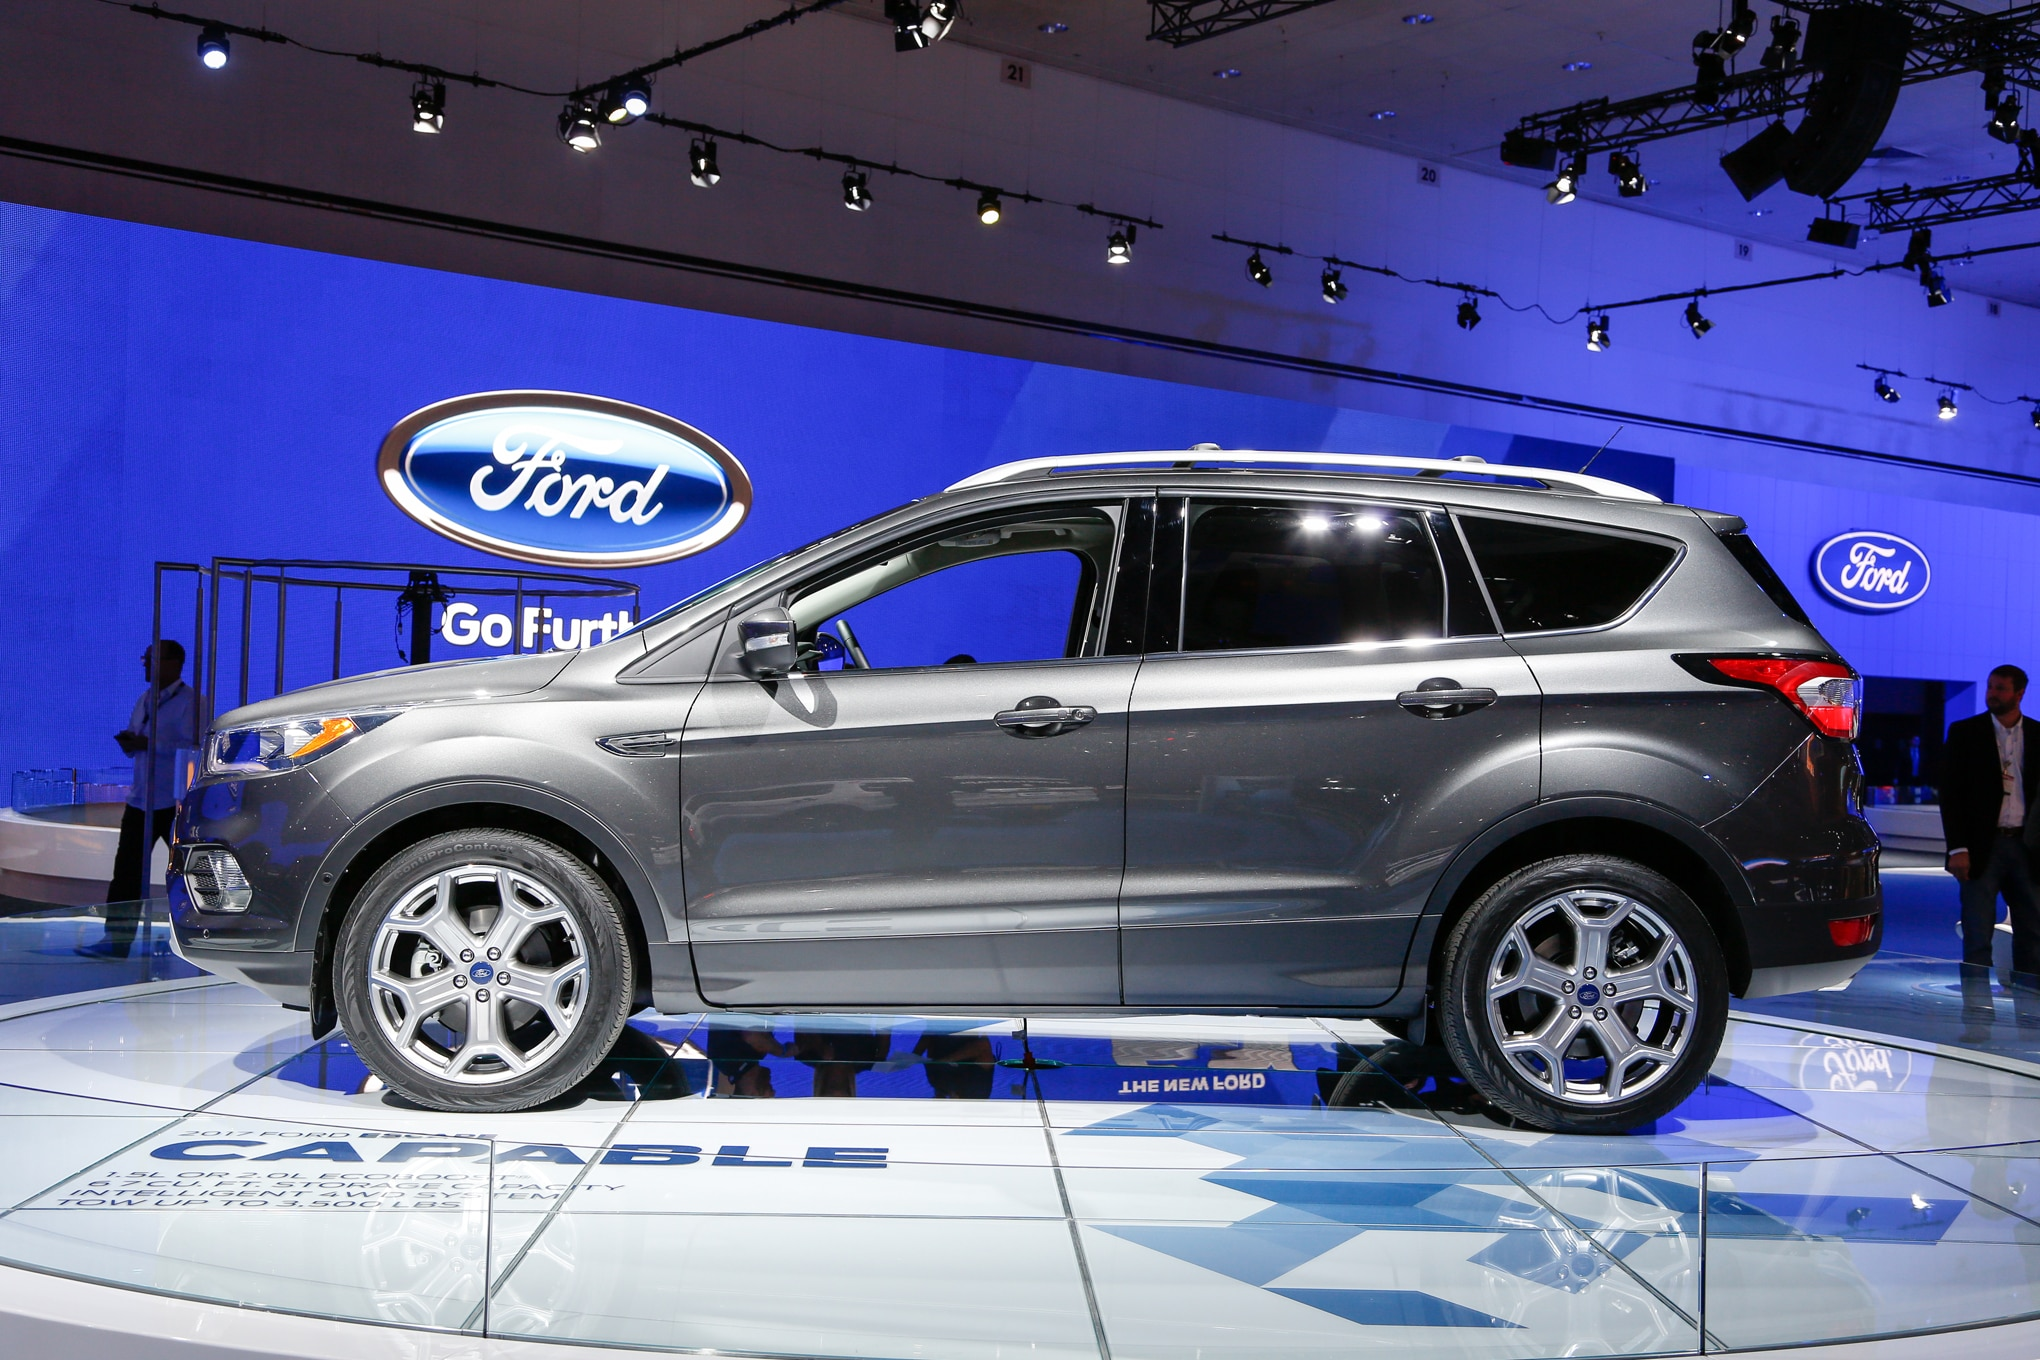 2017 Ford Escape Adds New Sport Appearance Package Raptor 250 08 Wiring Diagram Show More